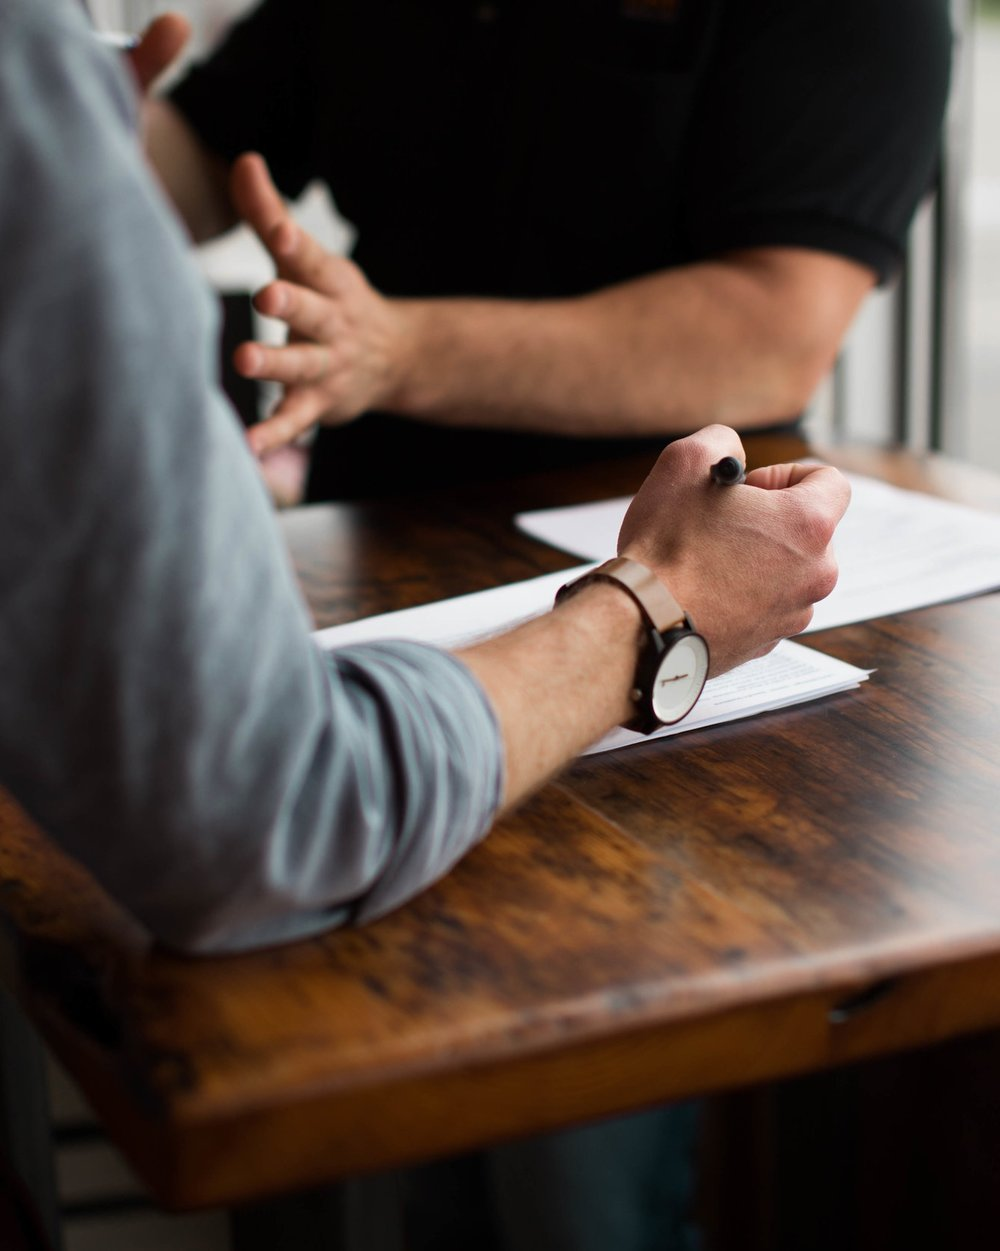 CONSULTATION - Whether you need consultations on how to create your software product, or on how to manage a small team of designers and developers, we have extensive experience and can introduce you to our most successful routines.